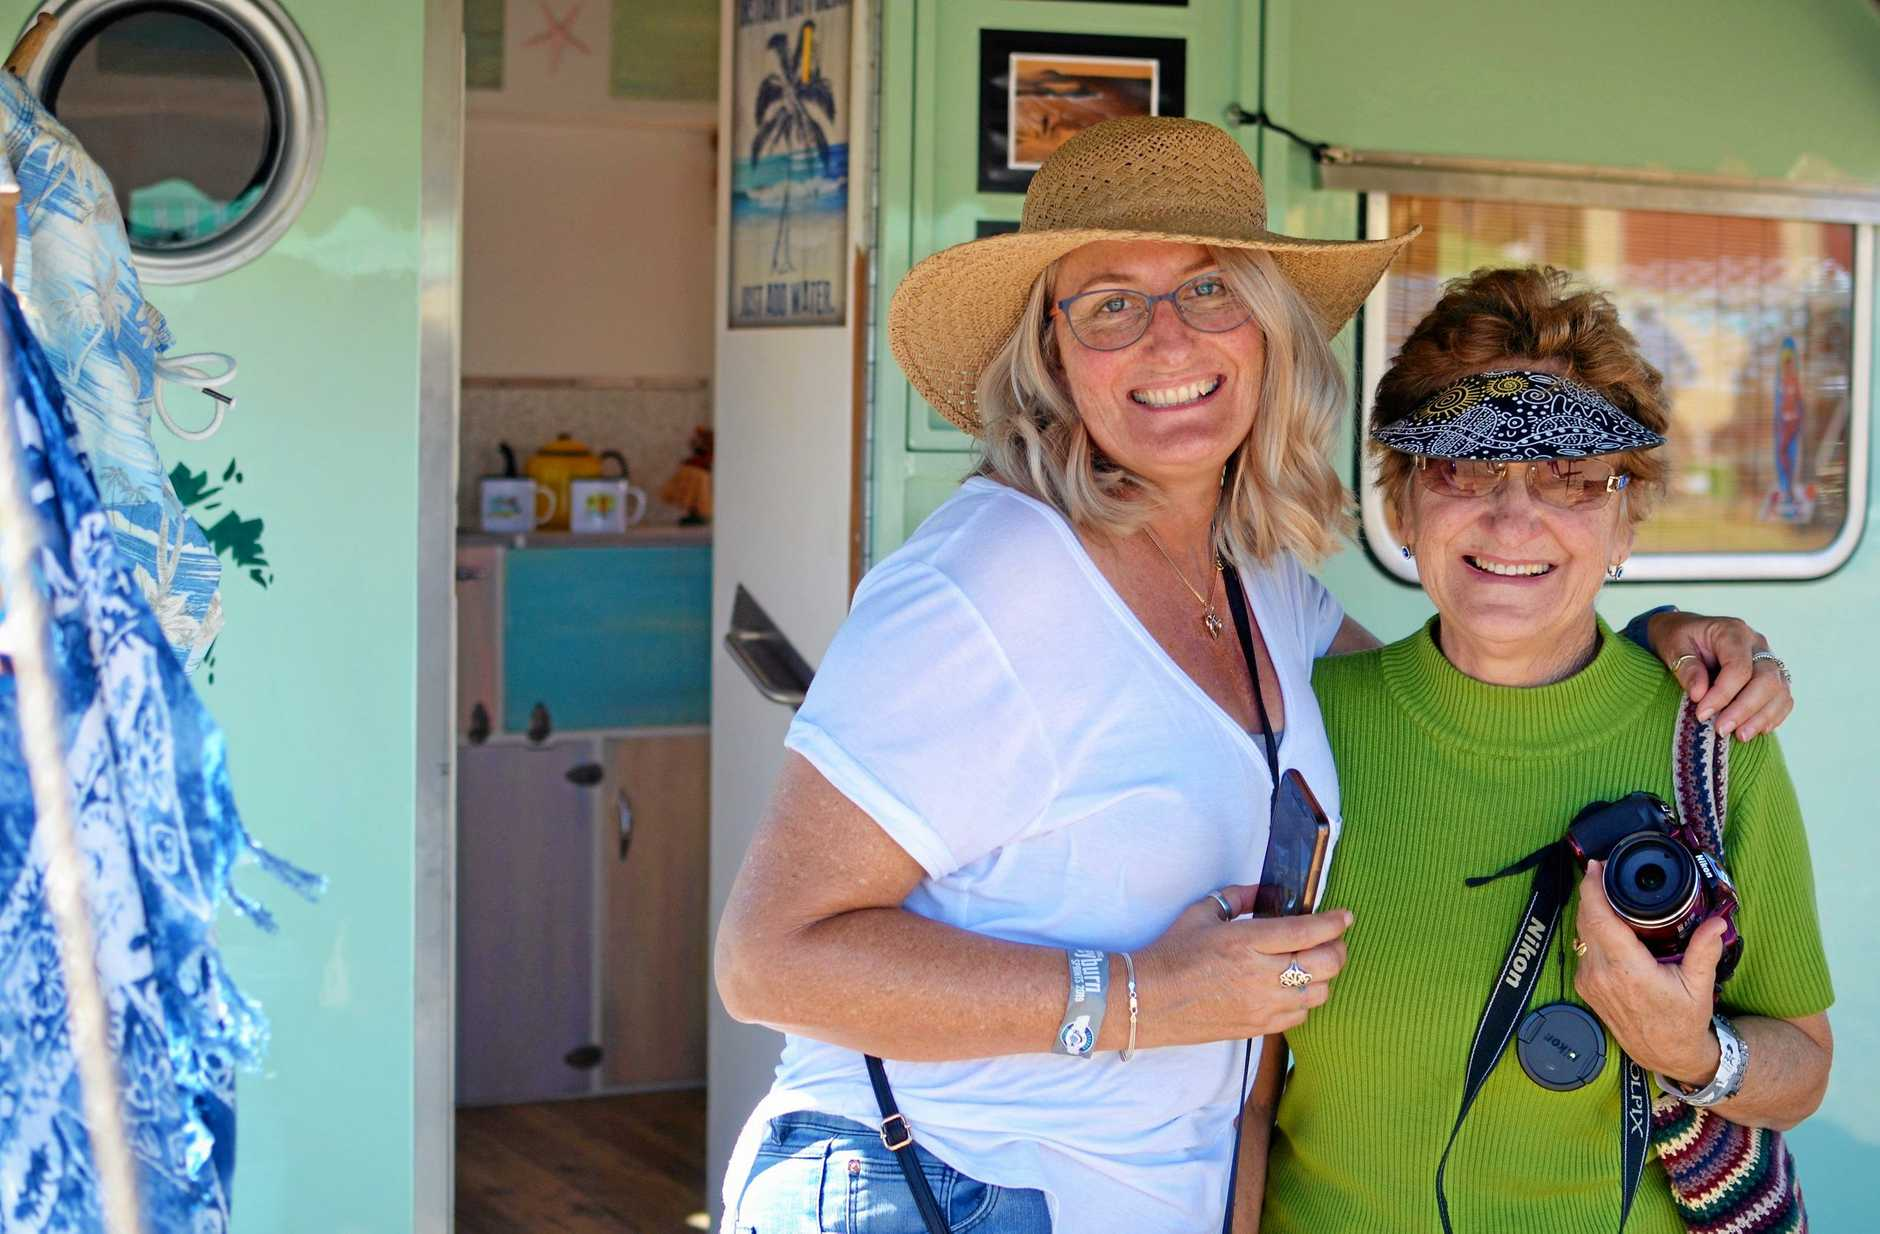 ALL SMILES: Rowena and Desley Stewart from Redcliffe check out the caravan display.